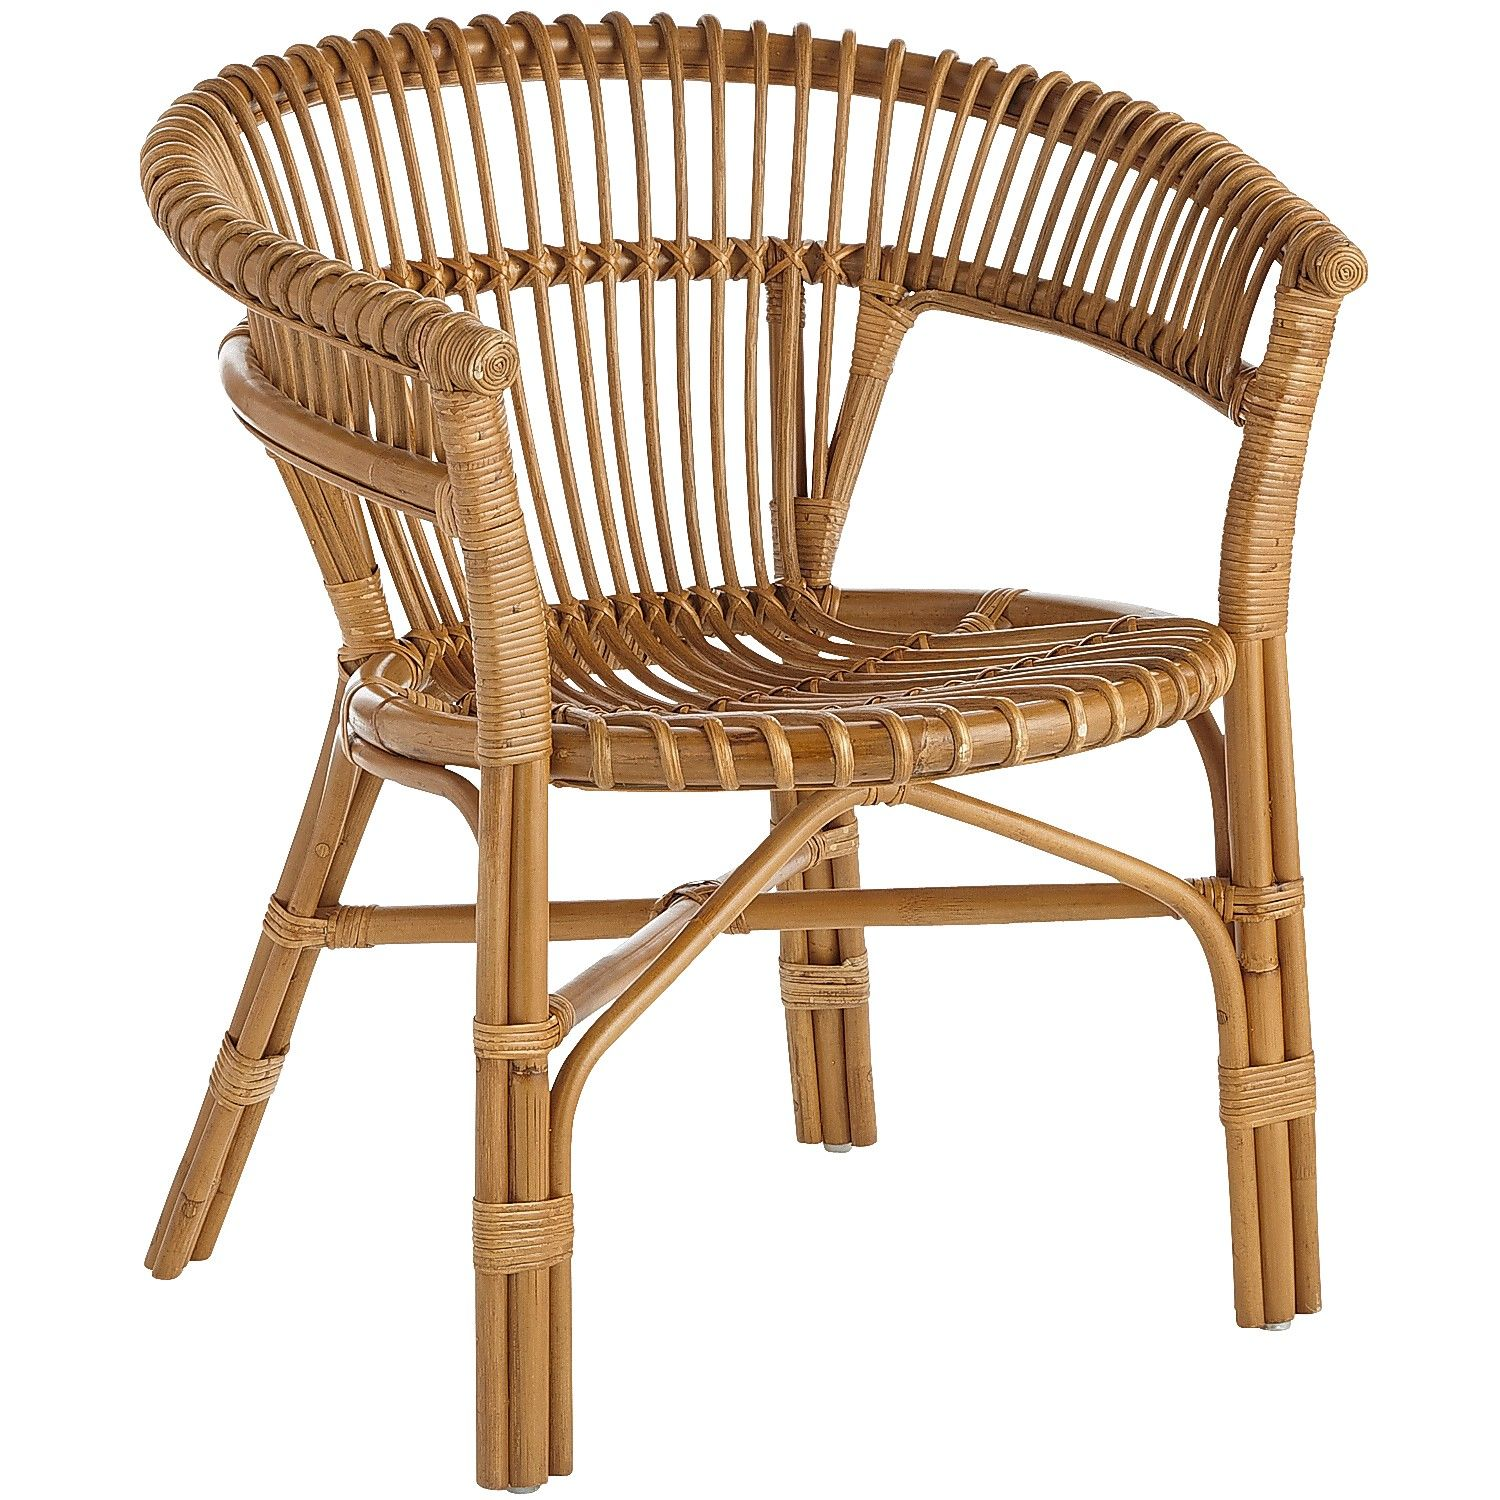 Furniture unique rattan chair for indoor or outdoor for Bamboo outdoor furniture